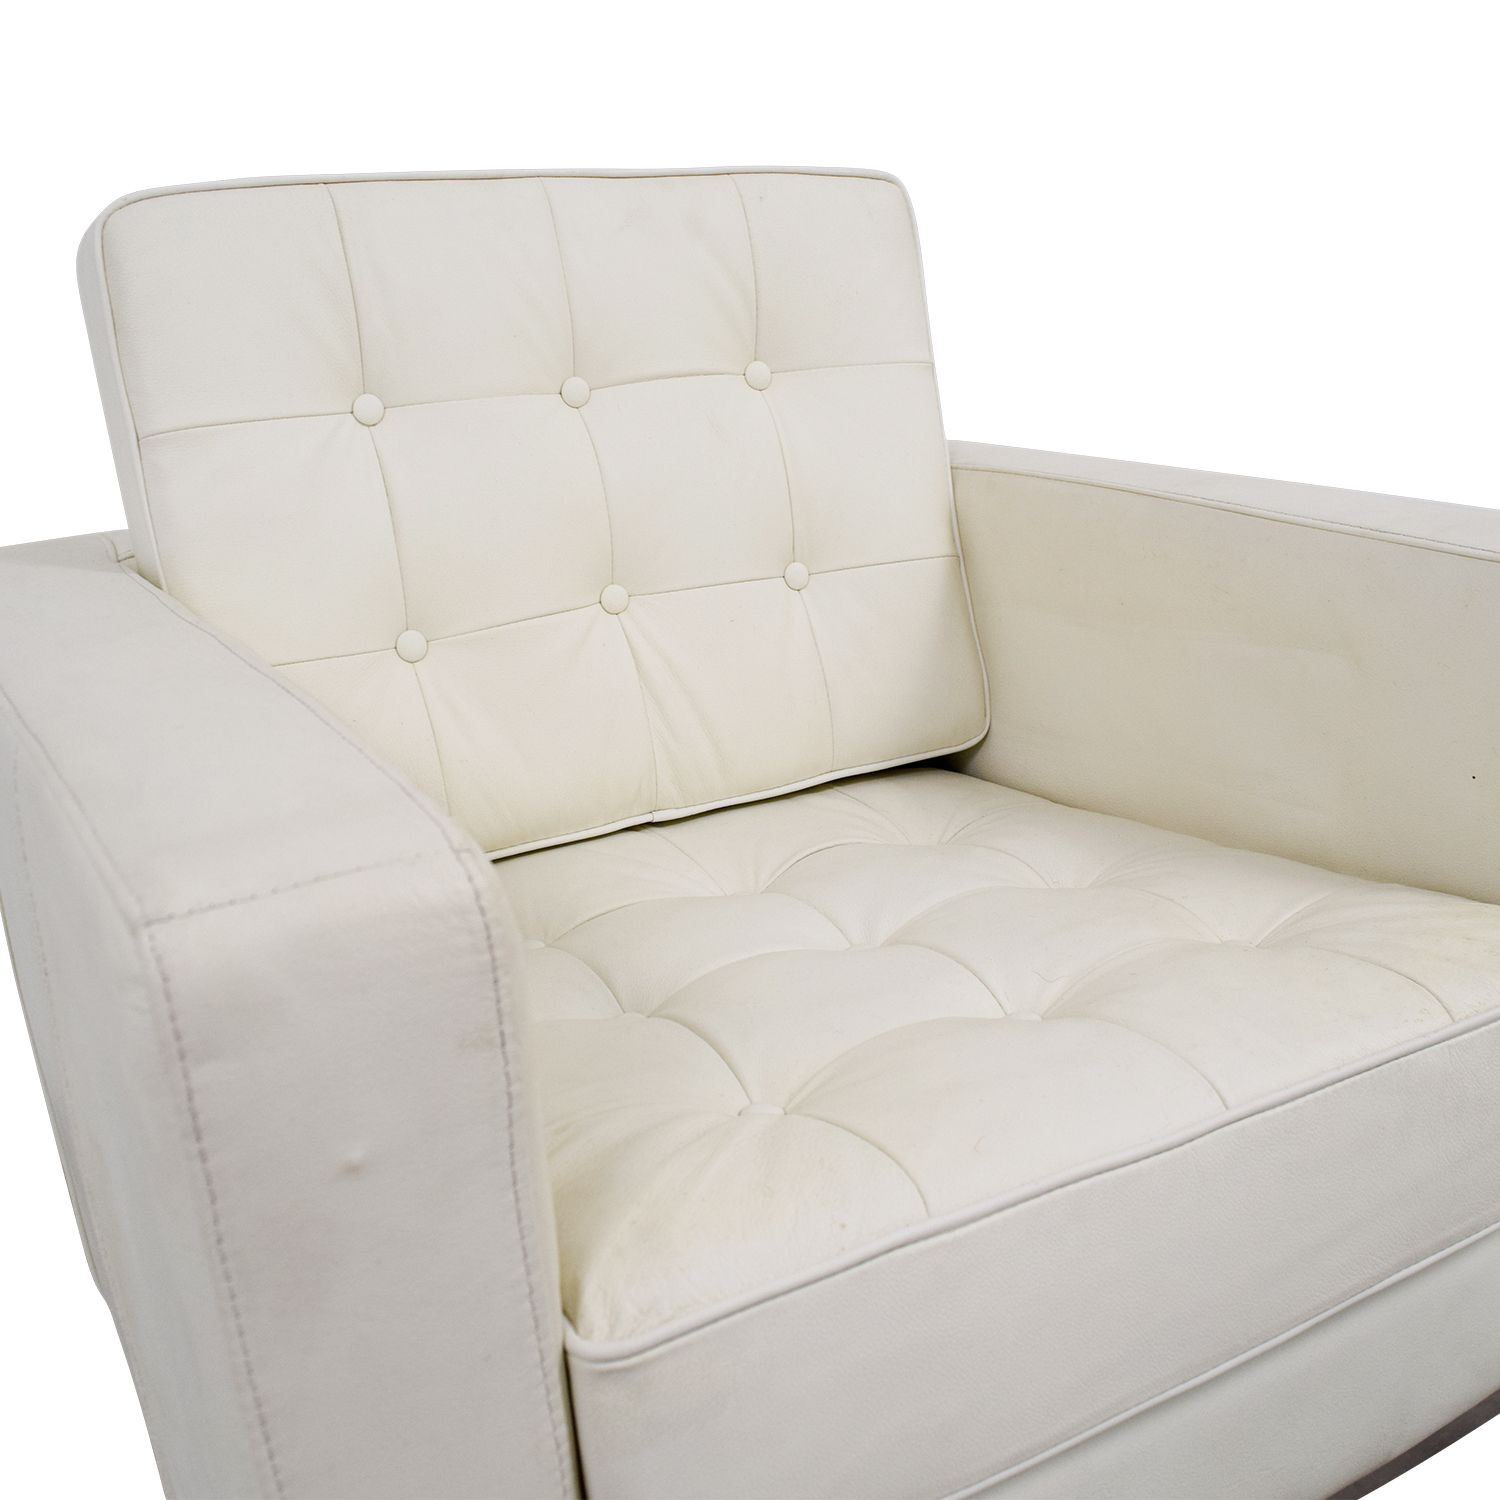 90% OFF - White Leather Tufted Accent Armchair / Chairs